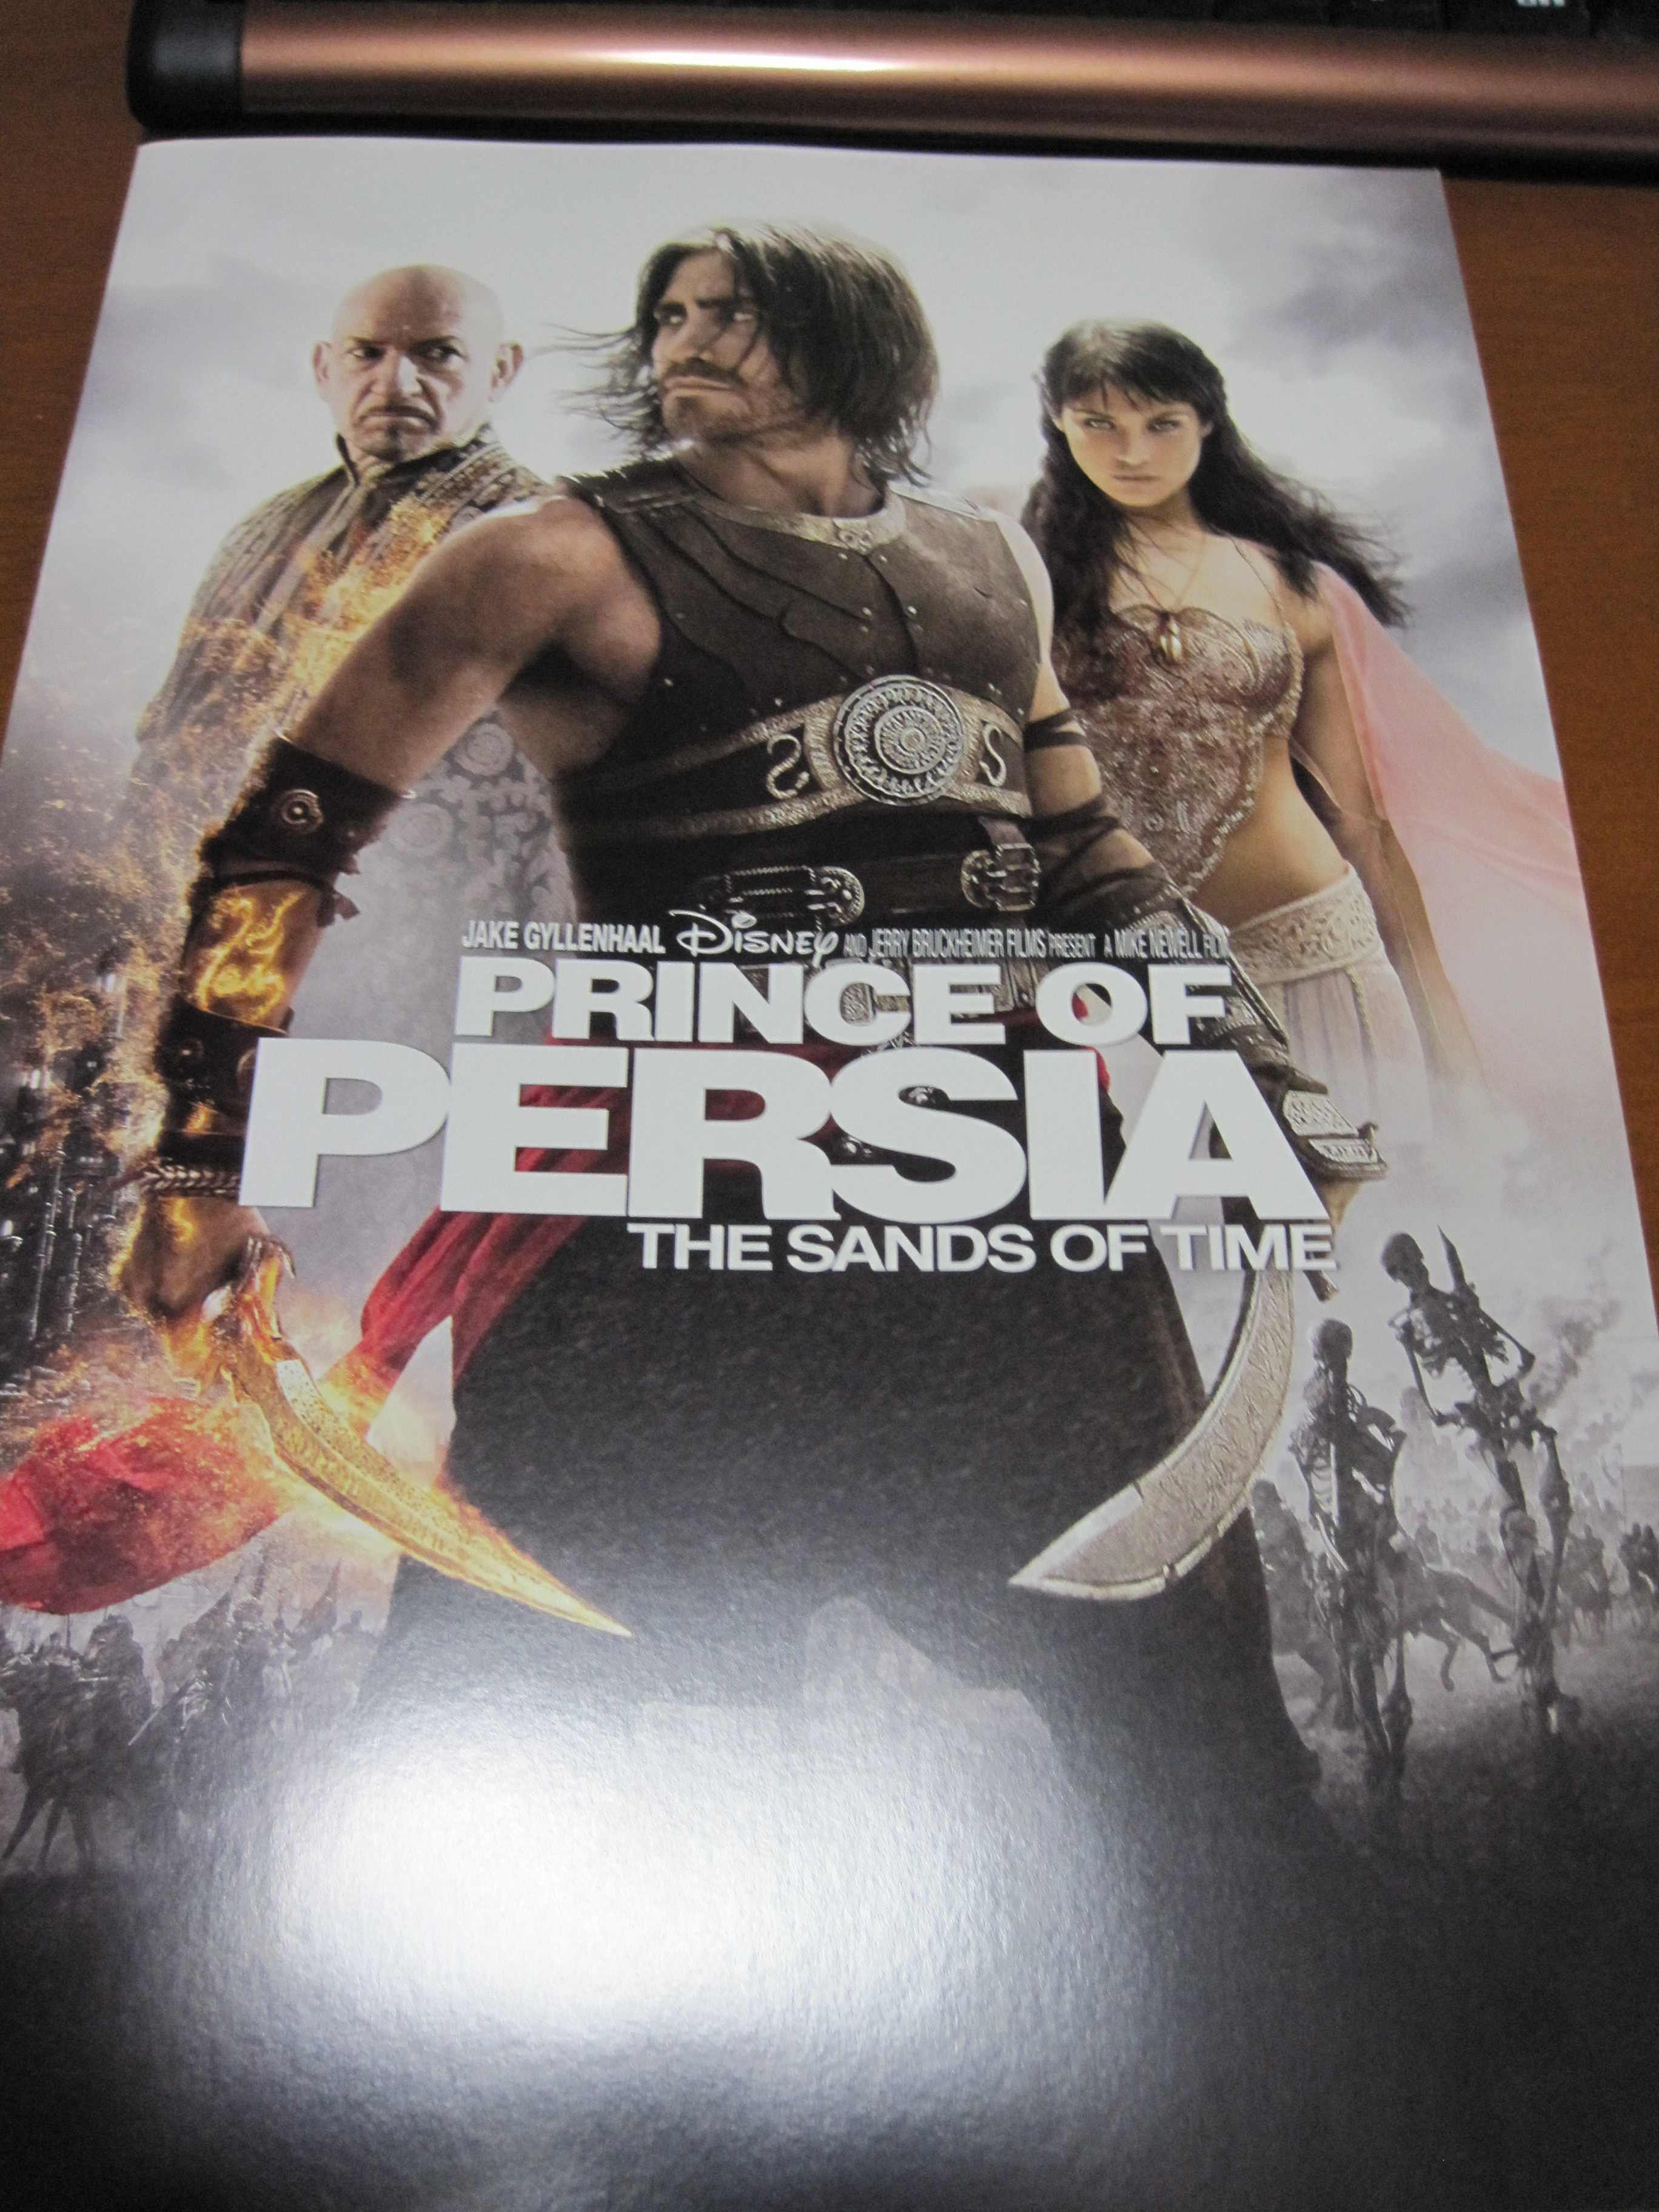 「PPINCE OF PERSIA」感想